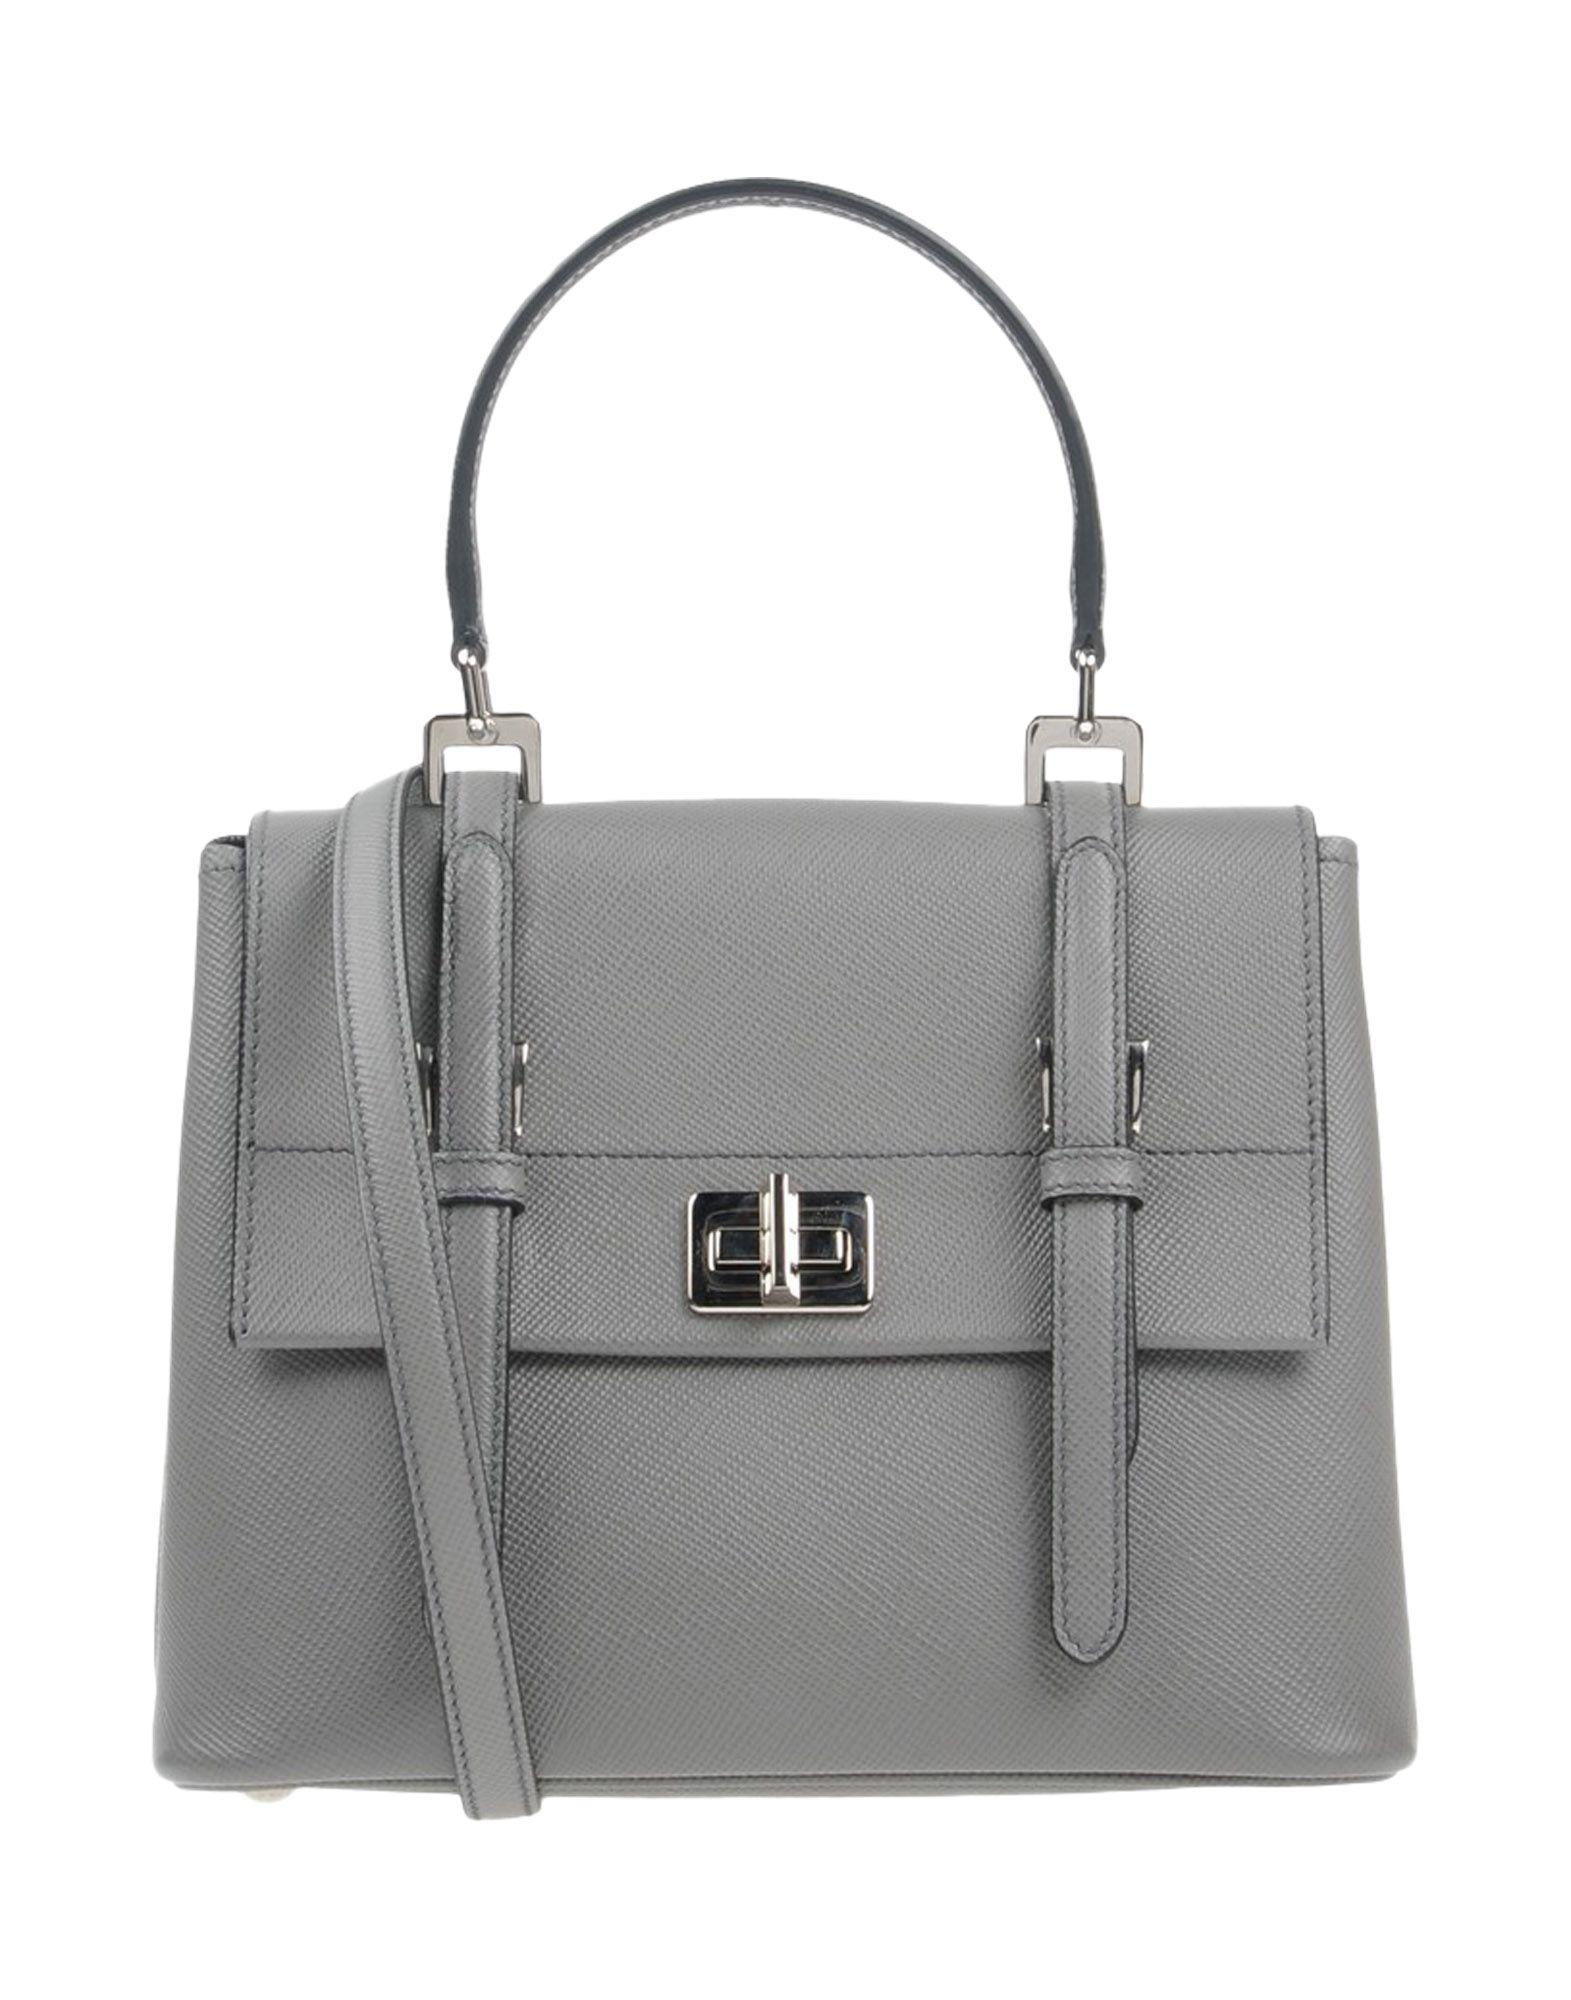 a3cc98c1ad895c Grey Prada Bag Uk | Stanford Center for Opportunity Policy in Education